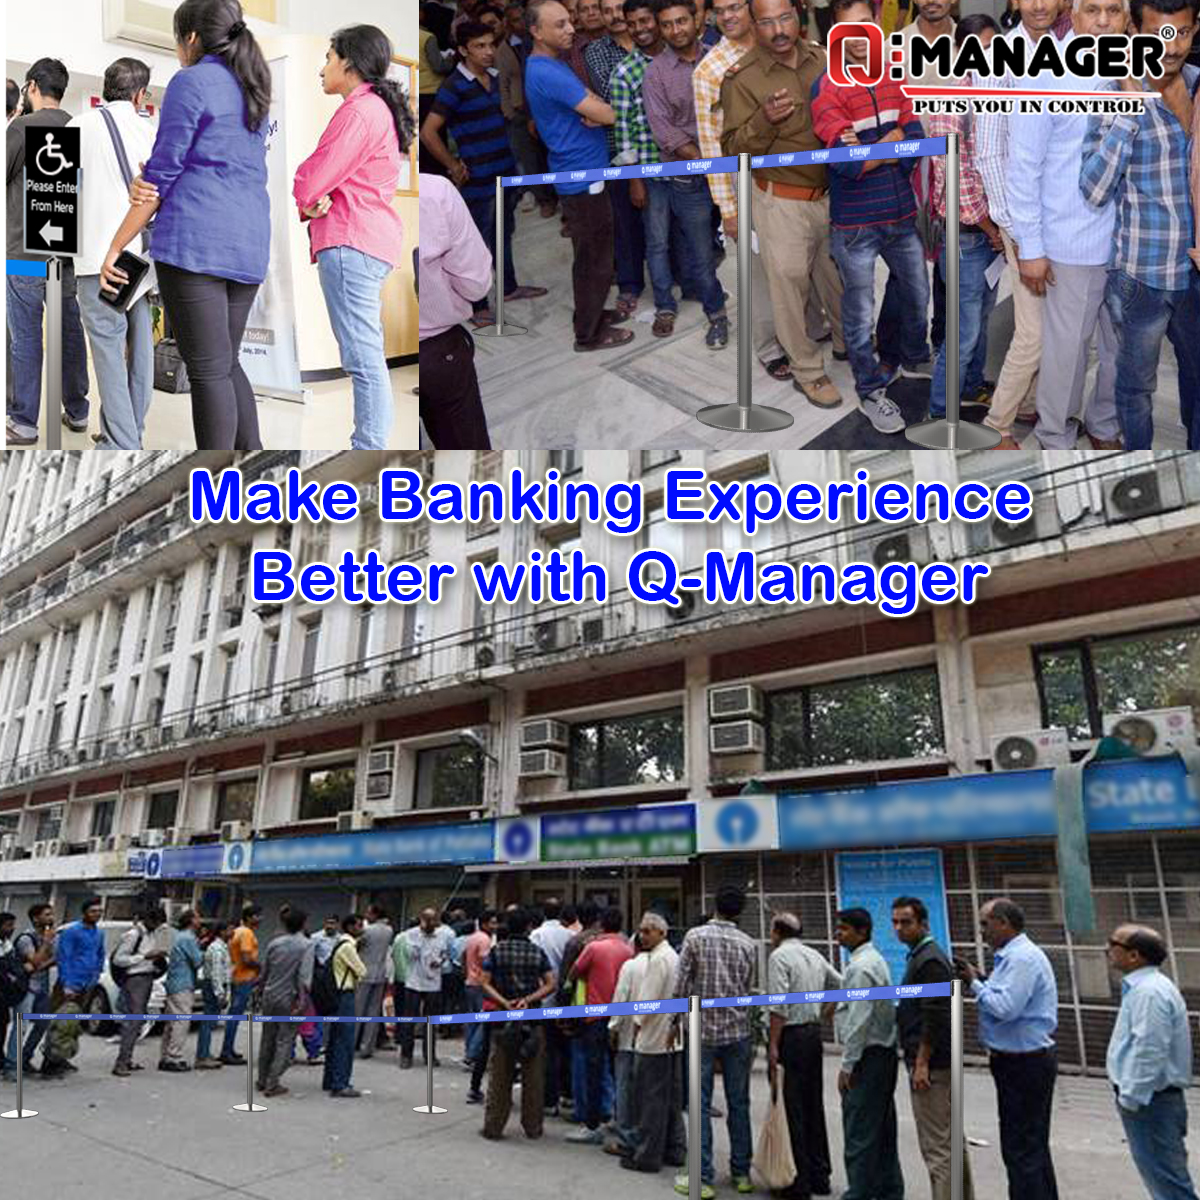 Make Banking Experience Better with Q-Manager.